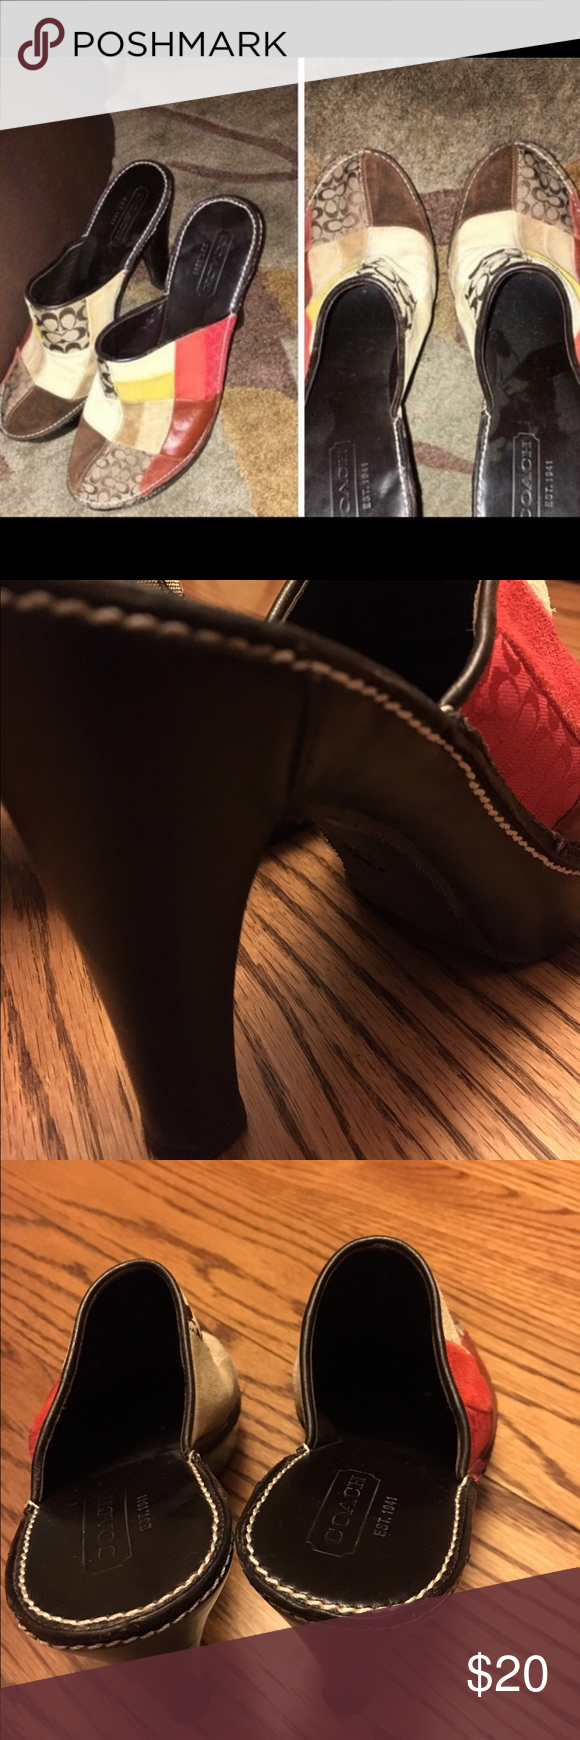 Coach shoes women's 6 Patchwork leather! Super cute and well-made. Women's size 6 Coach Shoes Mules & Clogs